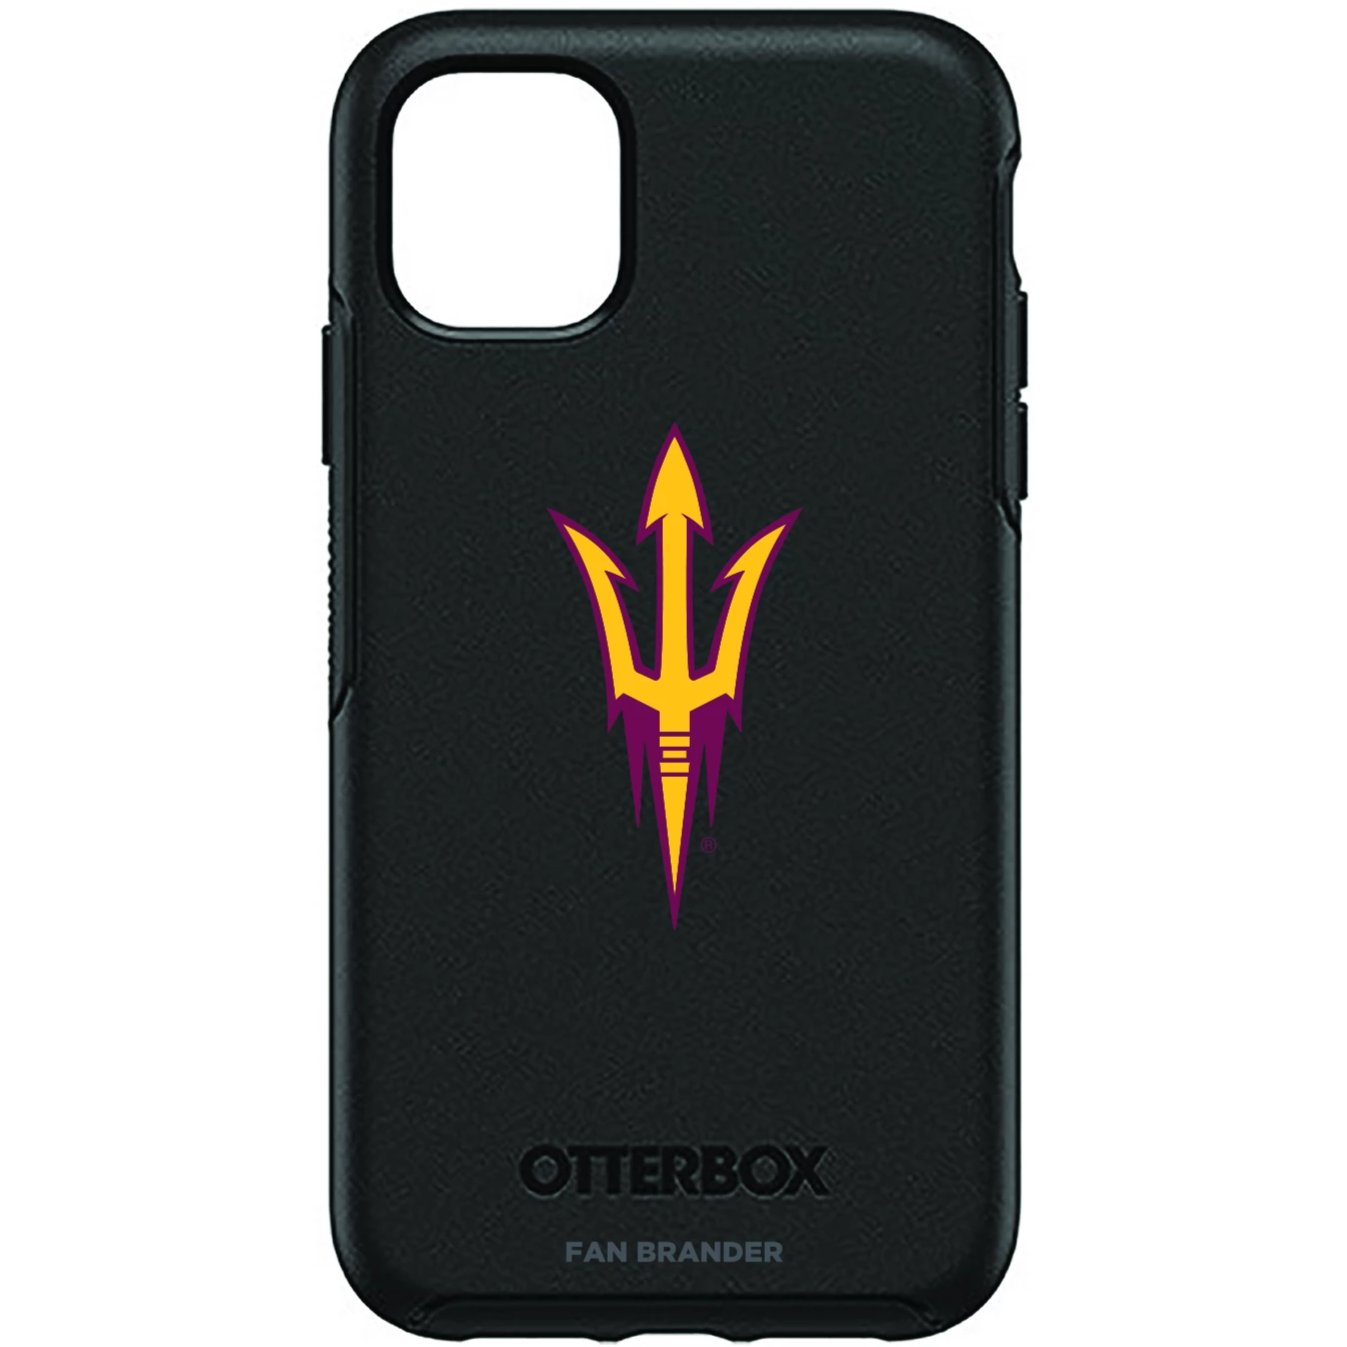 Arizona State Sun Devils Otterbox Symmetry Case (for iPhone 11, Pro, Pro Max)